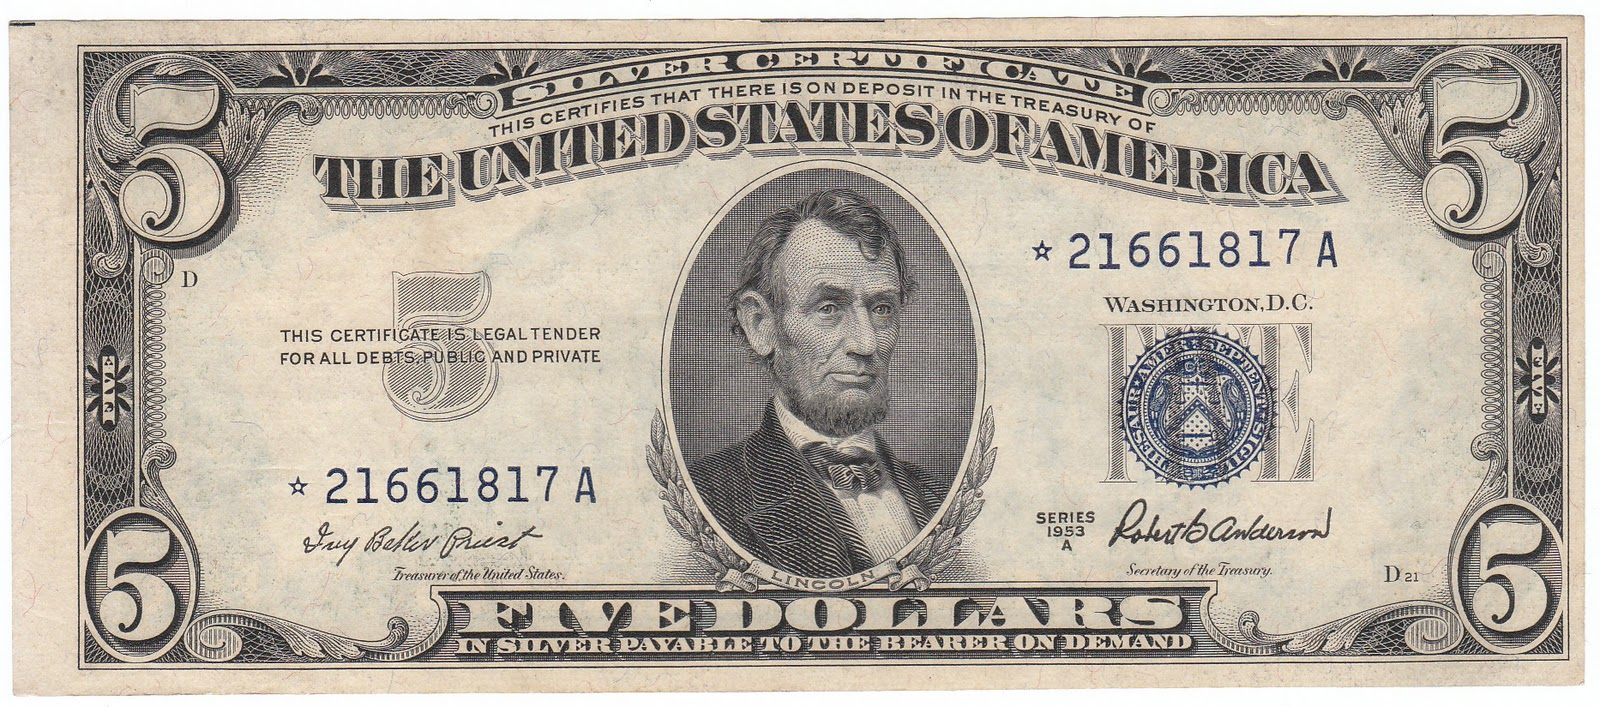 dollar silver certificate 1953 note money bill value star seal commons coined